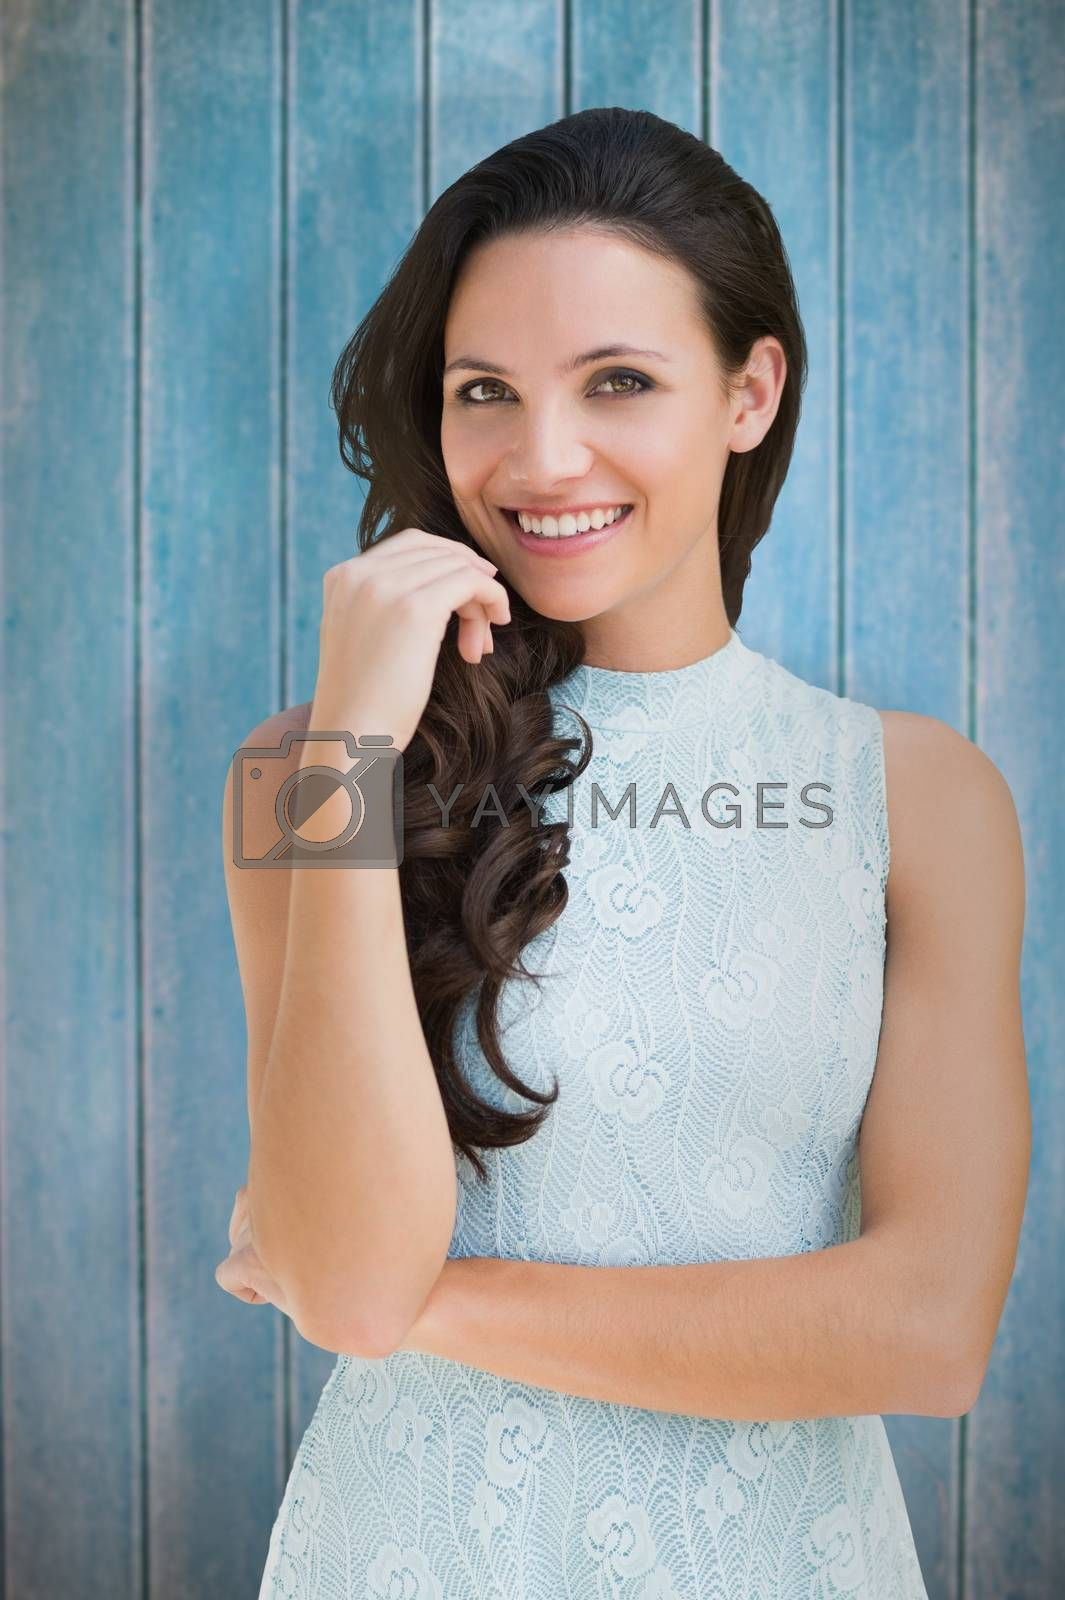 Stylish brunette against wooden planks